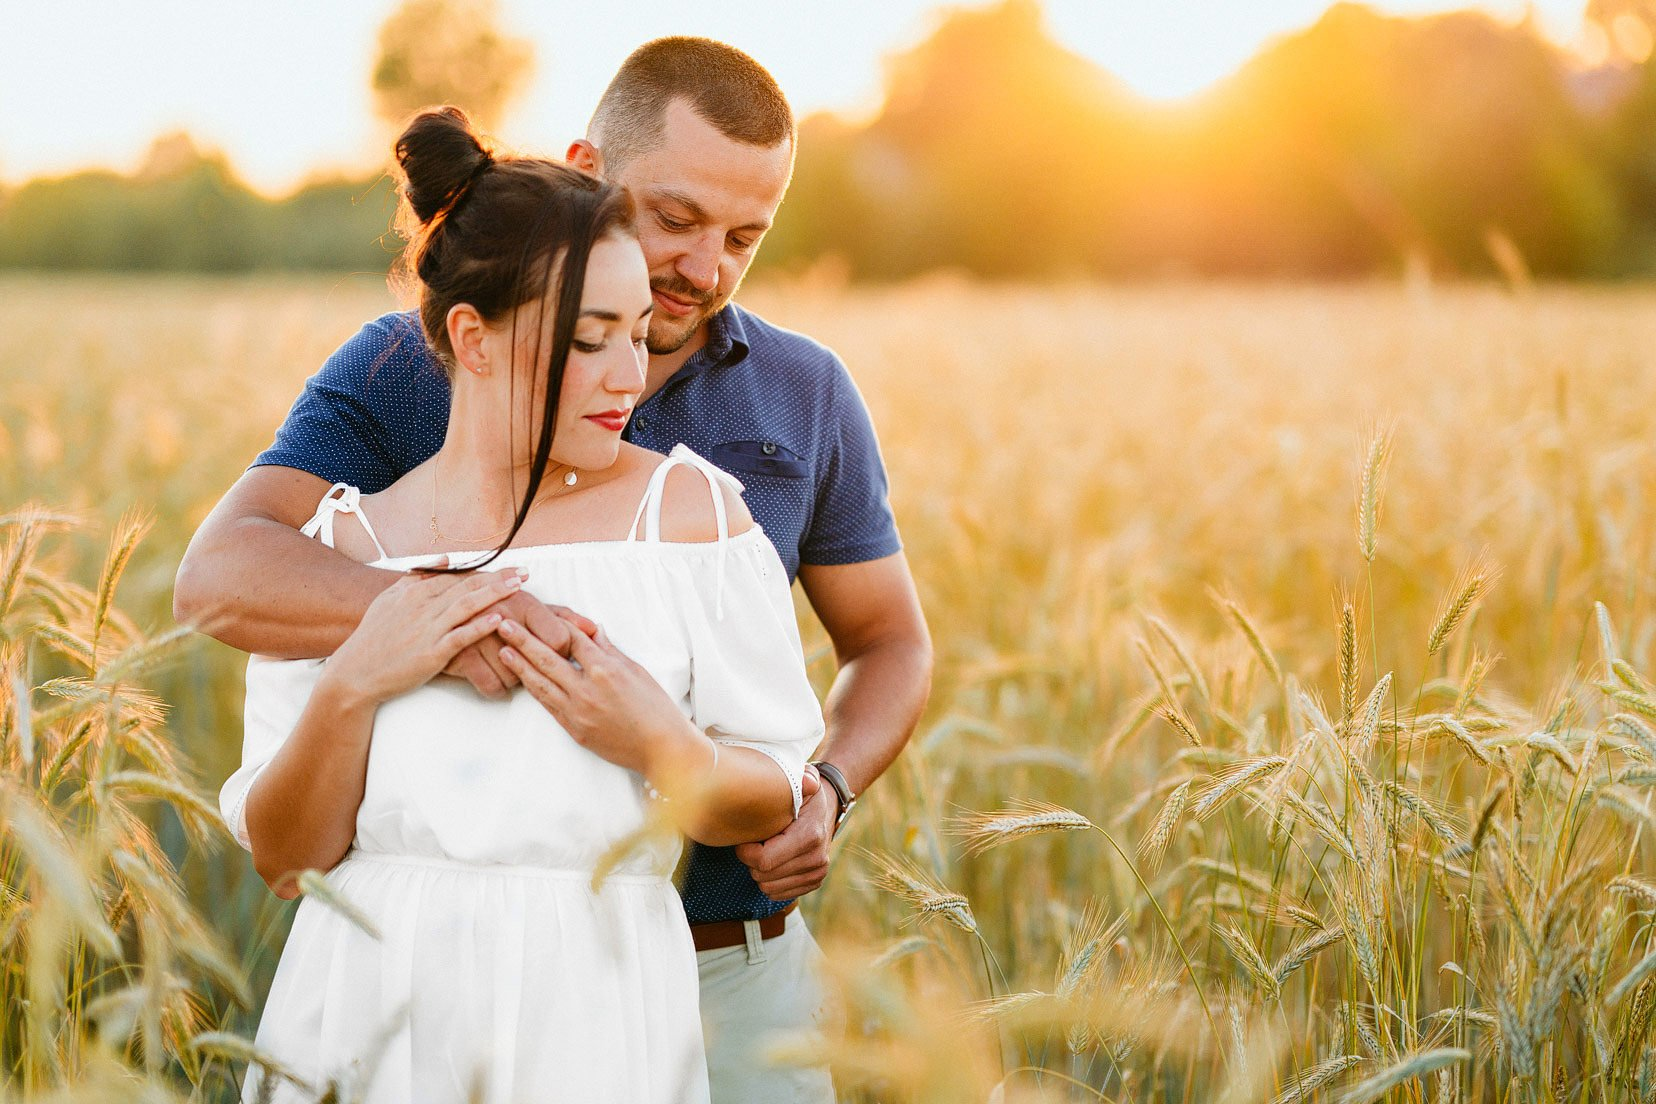 destination engagement photography 51 - Destination Engagement Photography - Anna + Adam